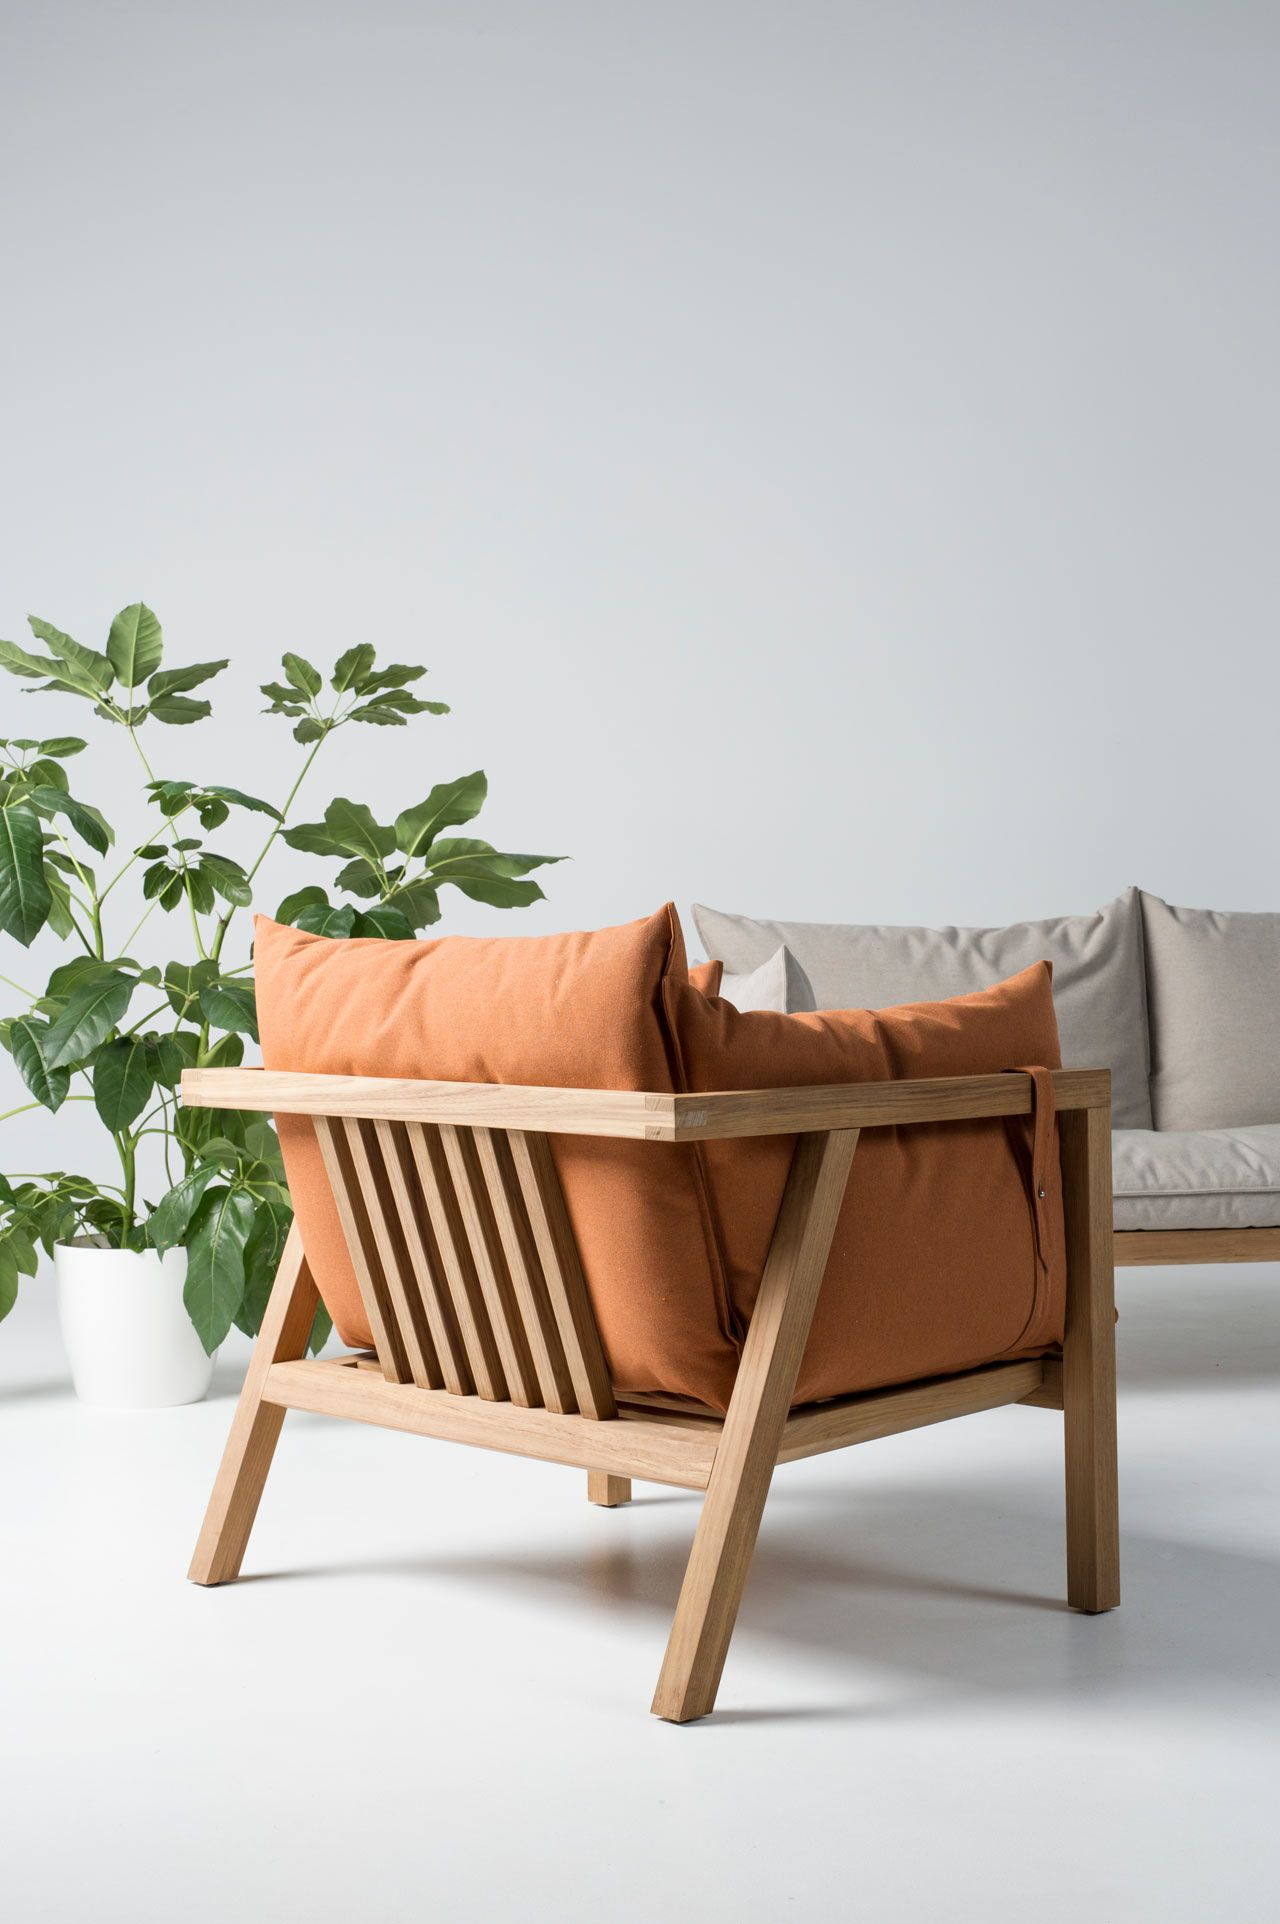 Umomoku A Comfortable Outdoor Furniture Collection Designed For Lounging Comfortable Outdoor Furniture Furniture Design Chair Outdoor Furniture Design